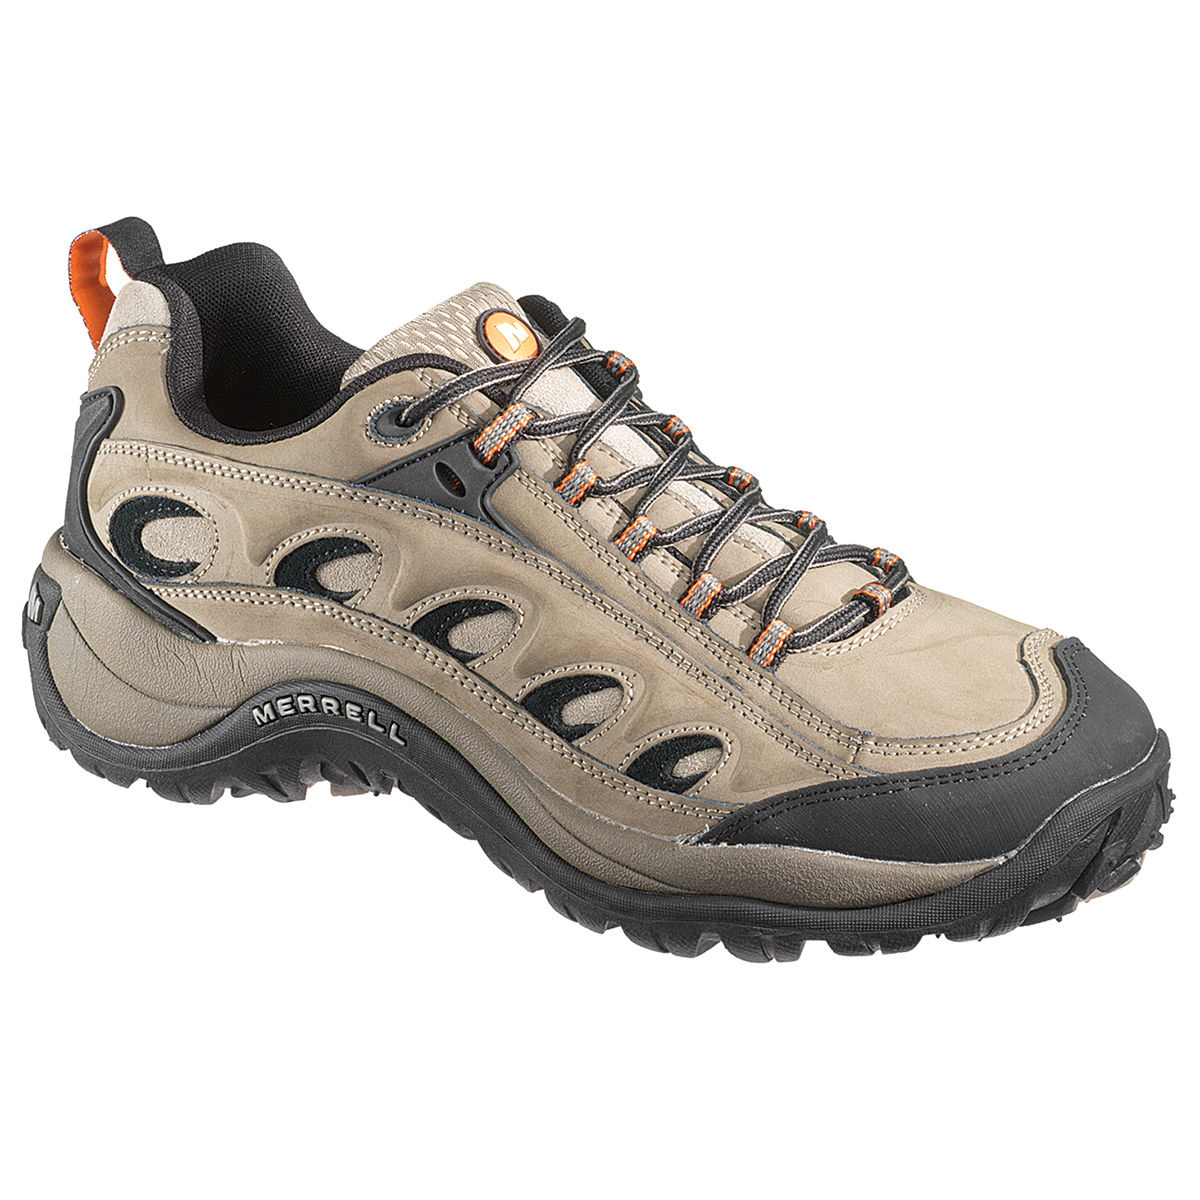 photo: Merrell Women's Radius trail shoe